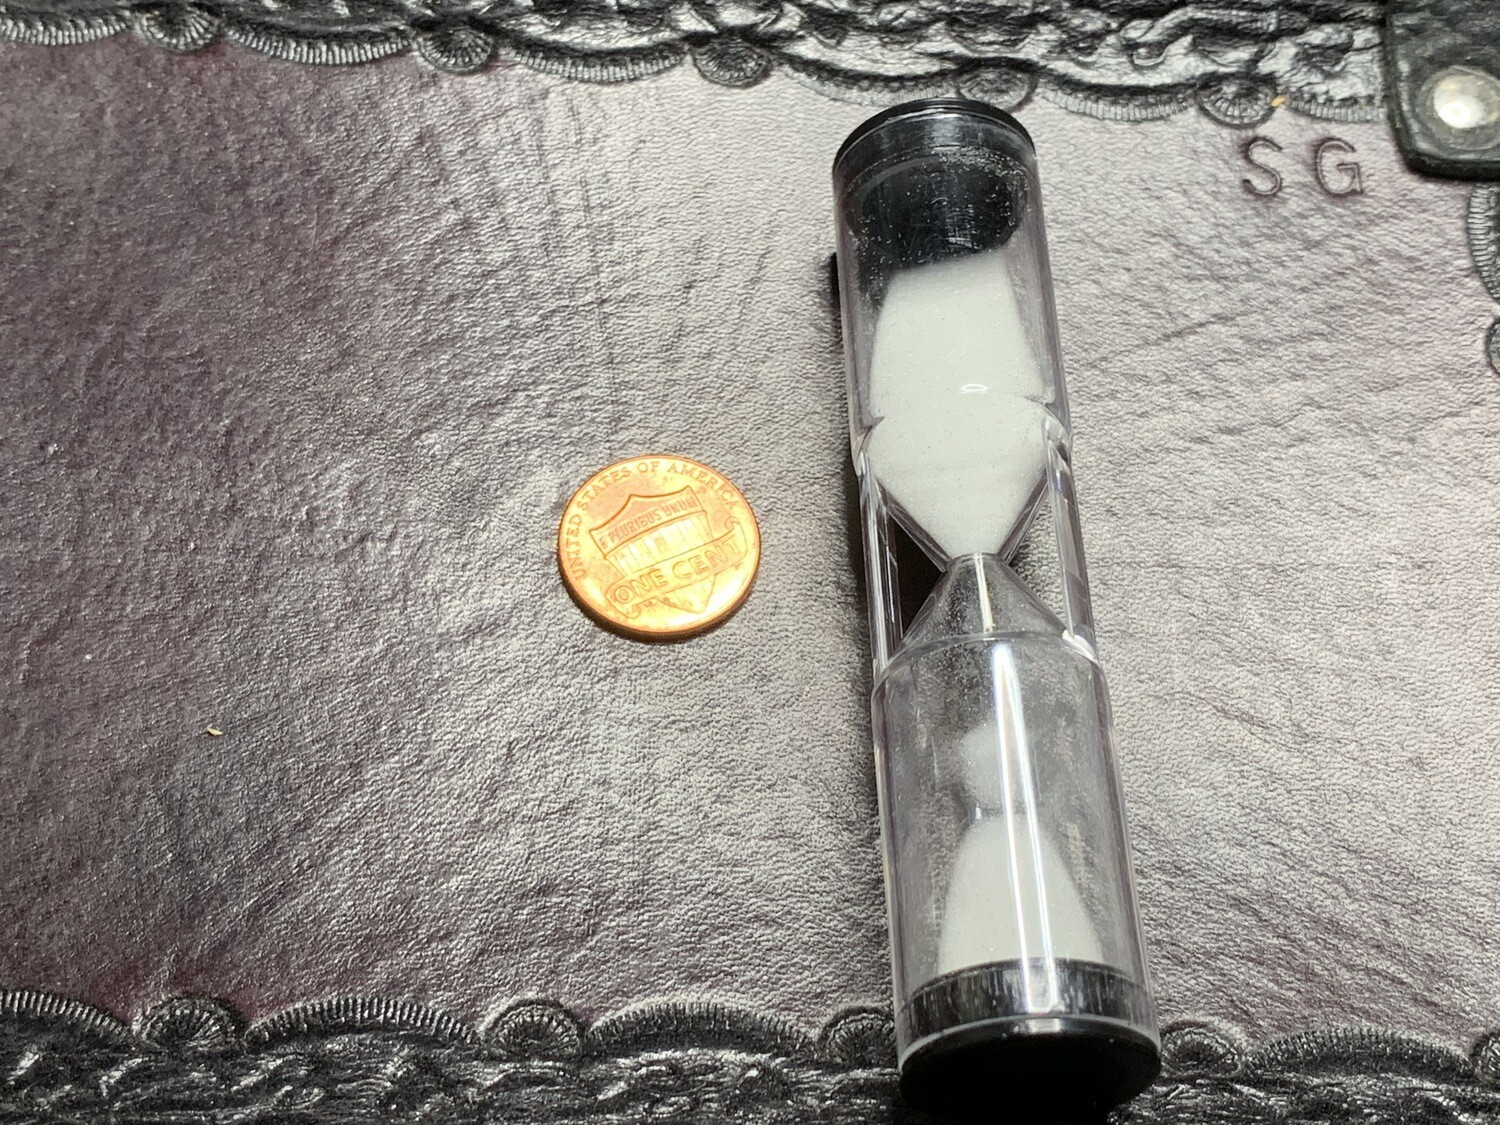 Hourglass 1 Minute, 60 Second Sand Timer Counter RPG Tabletop